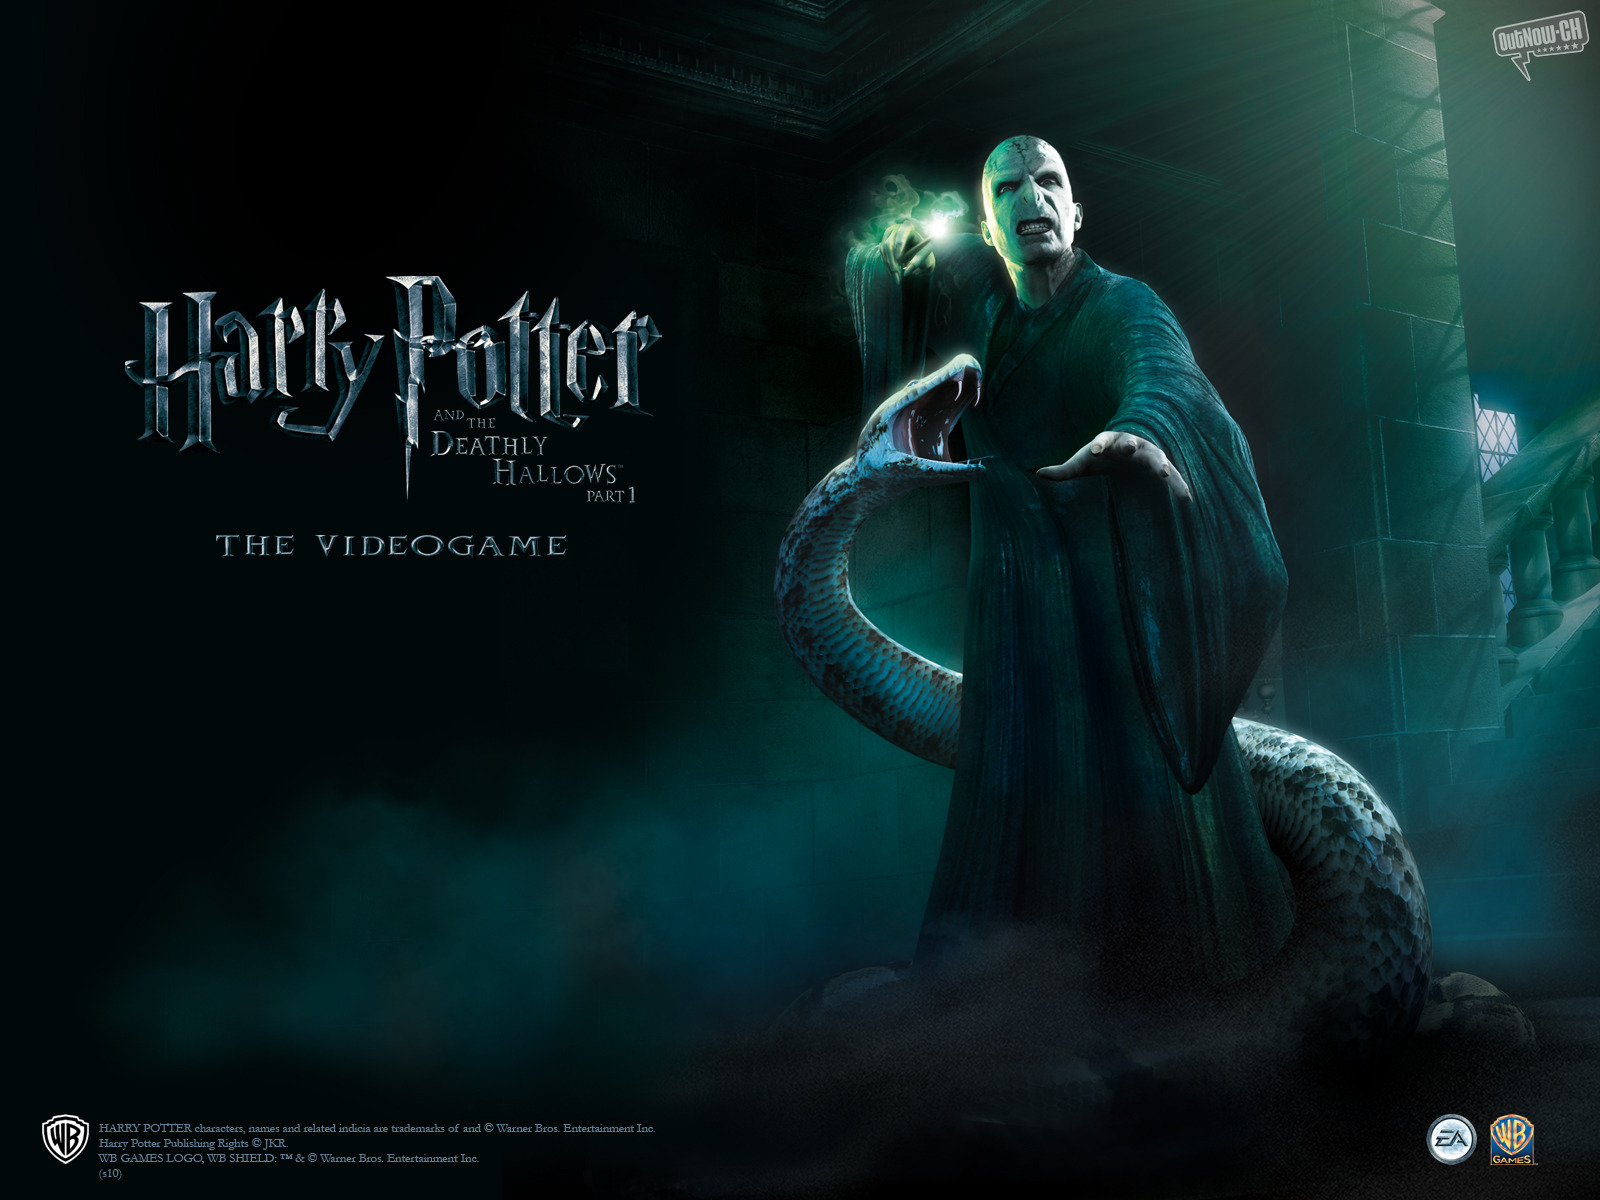 Wallpapers Harry Potter Harry Potter Deathly Hallows Wallpapers Harry Potter Deathly